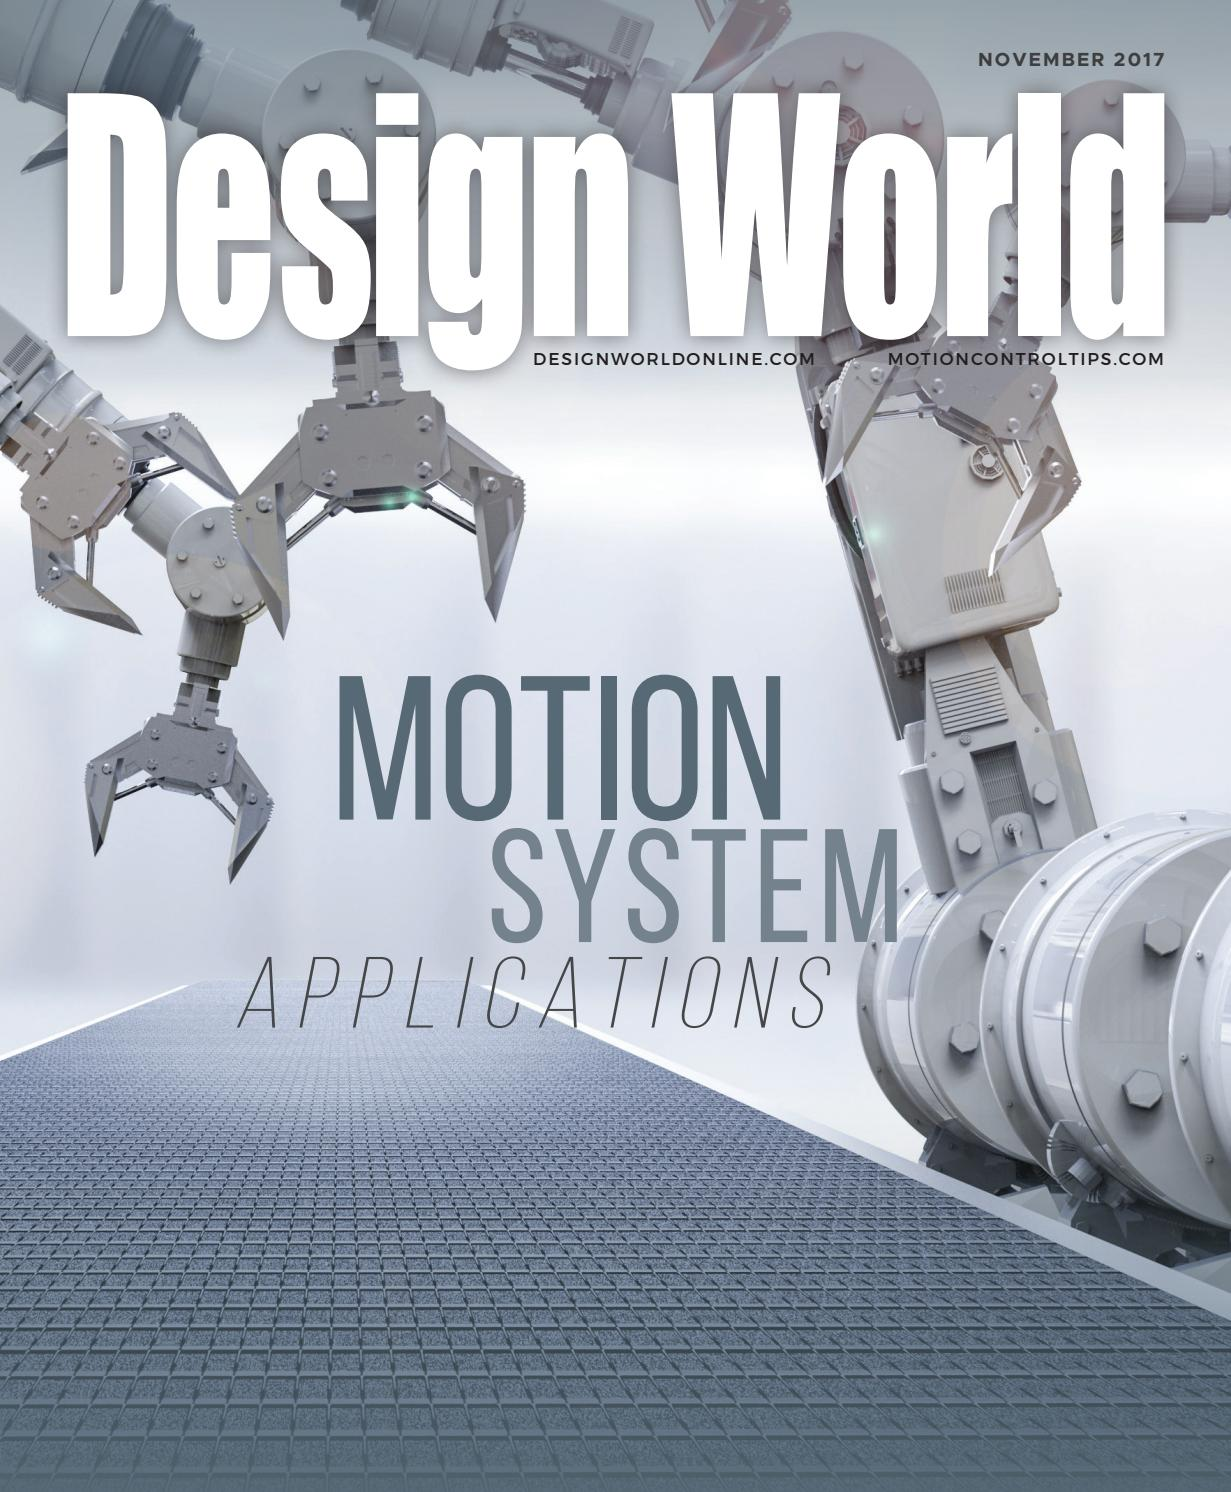 2015 Motion Systems Handbook By Wtwh Media Llc Issuu Mc Supply Co Bodine Electric Kb Electronics Brake Motor Stepper System Applications 2017